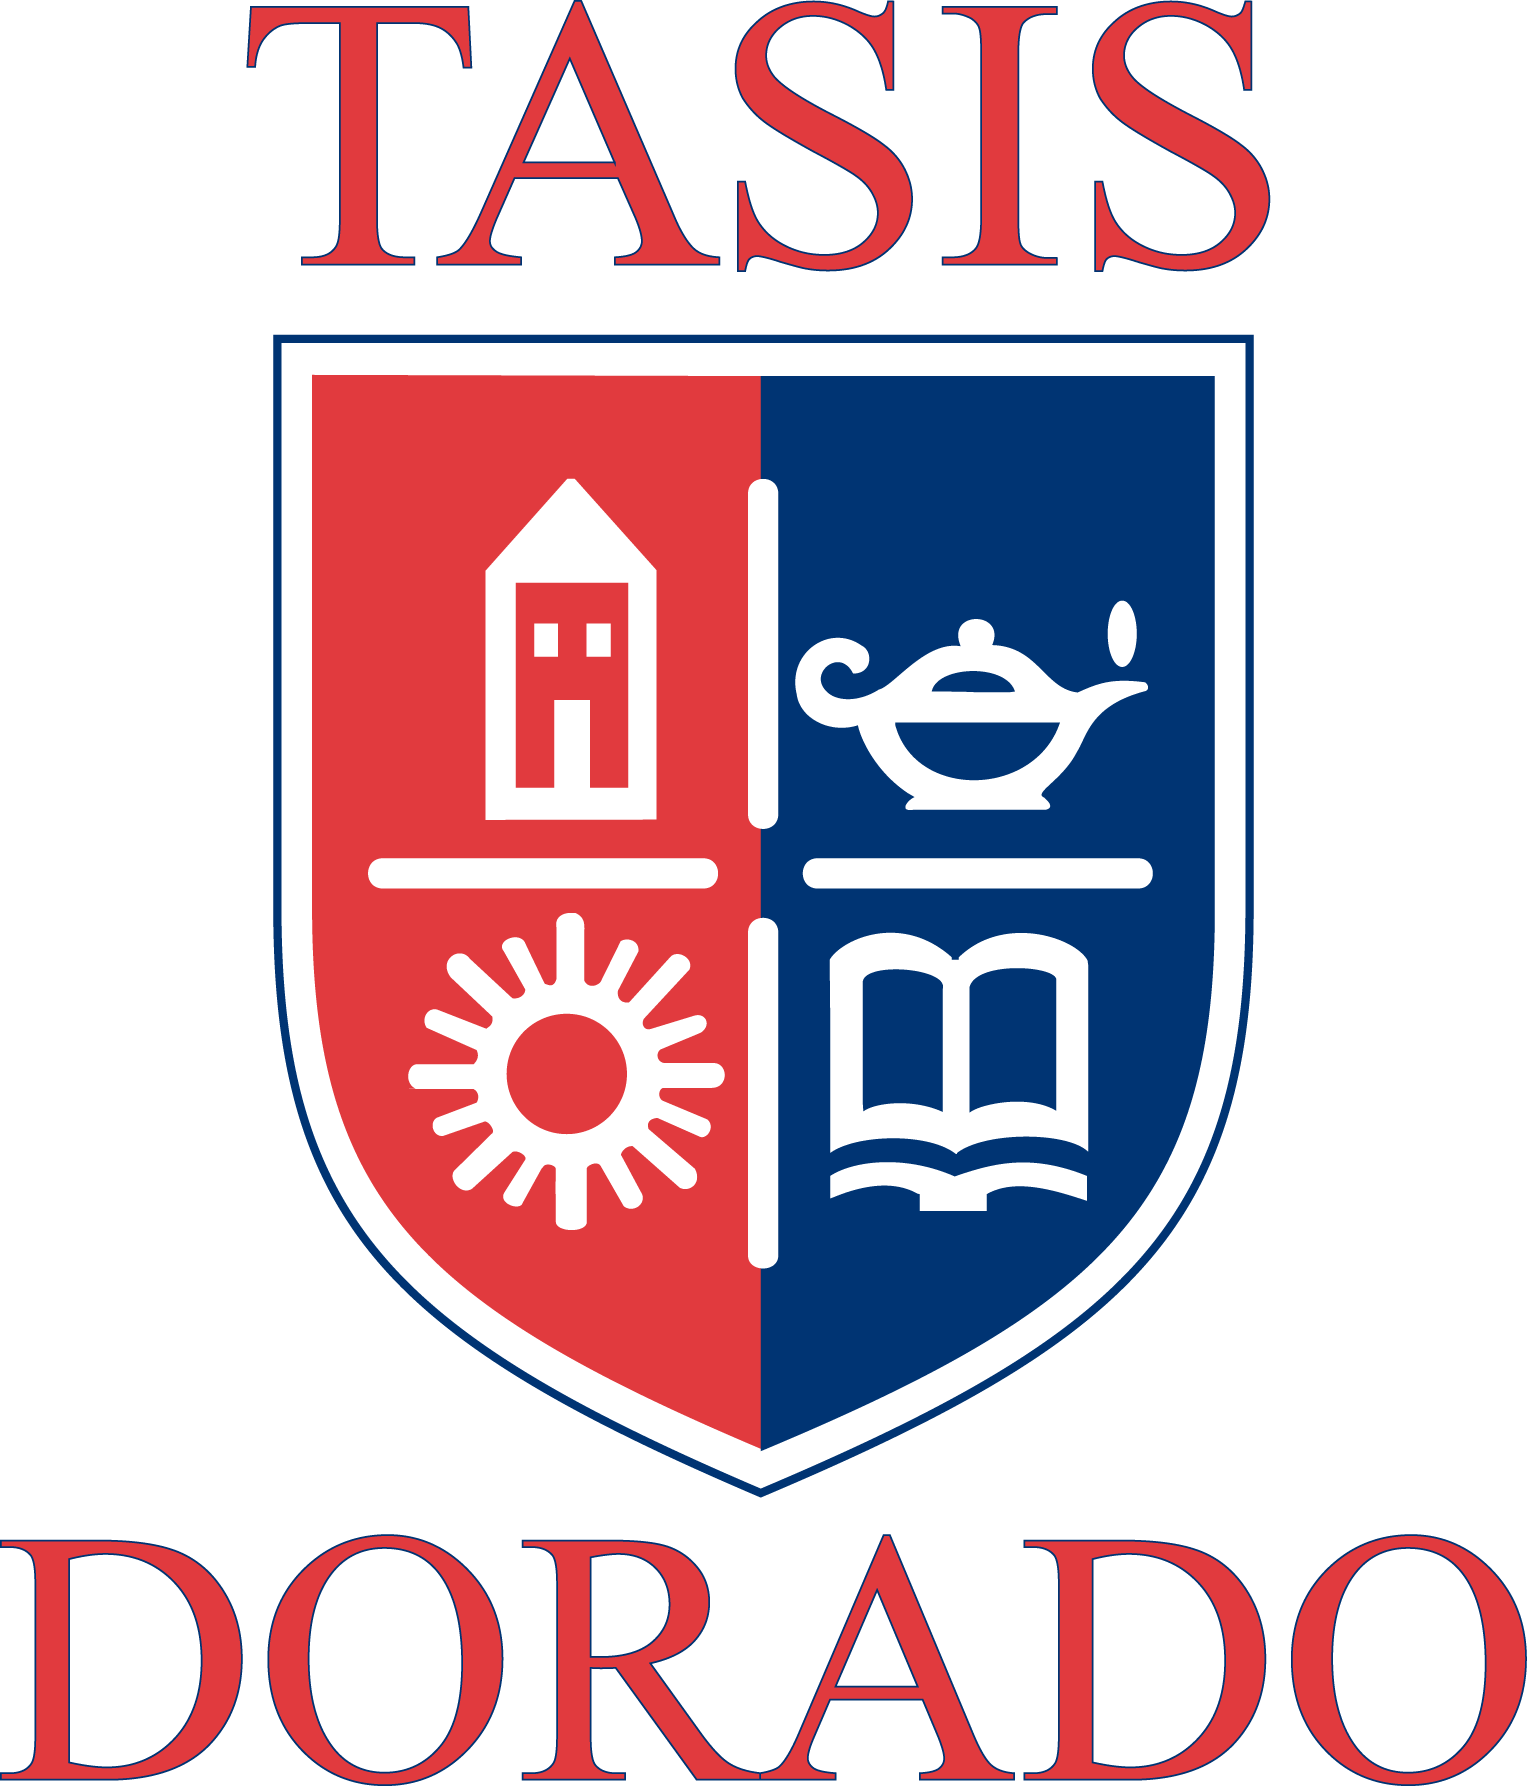 The TASIS School in Dorado